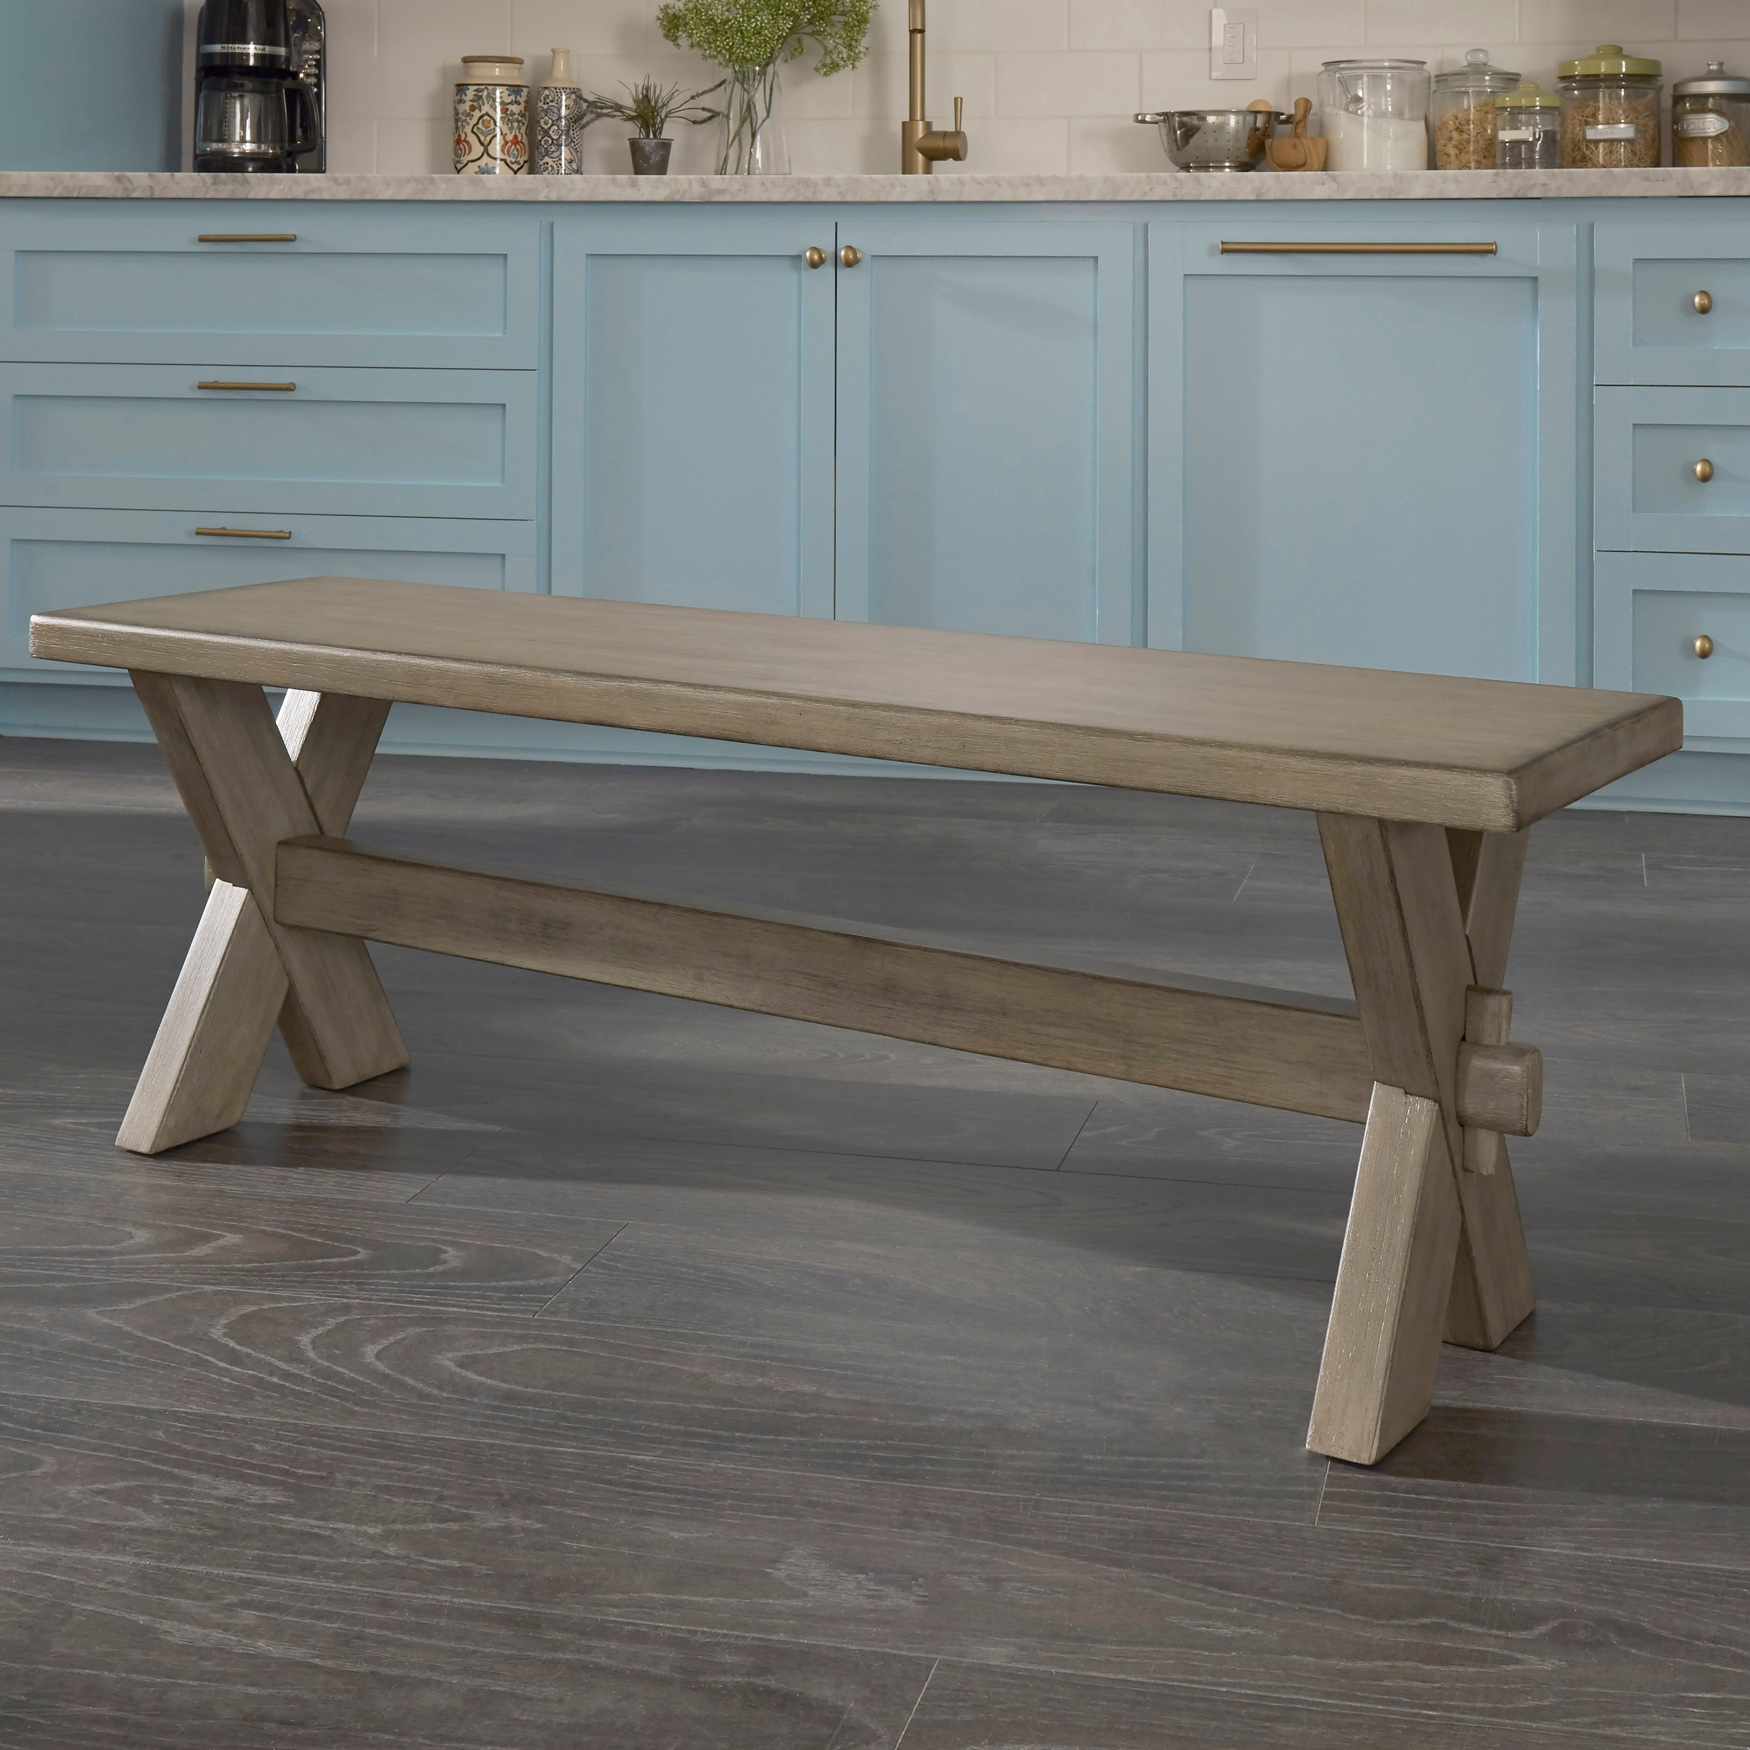 Mountain Lodge Trestle Bench by Home Styles, MULTI GRAY